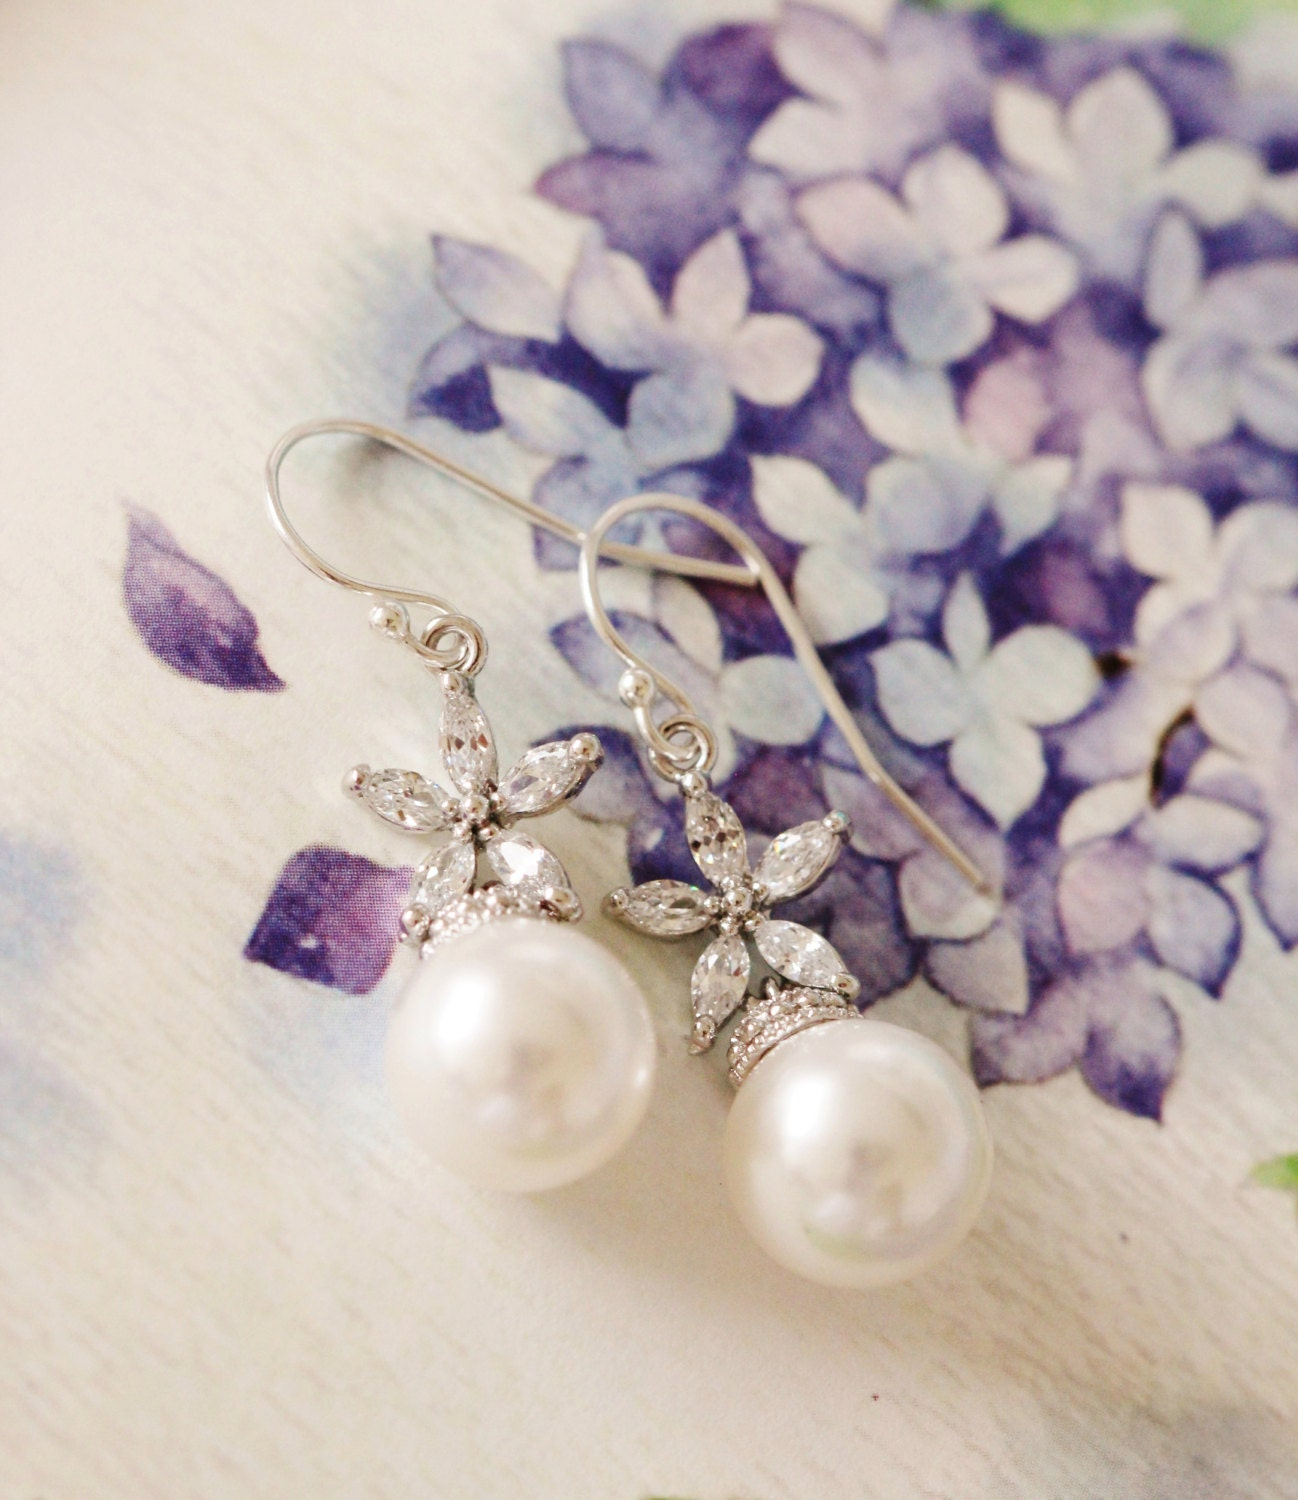 Pearl Bridal Earrings Romantic Wedding Jewelry Bridesmaid Gift Cherry ...